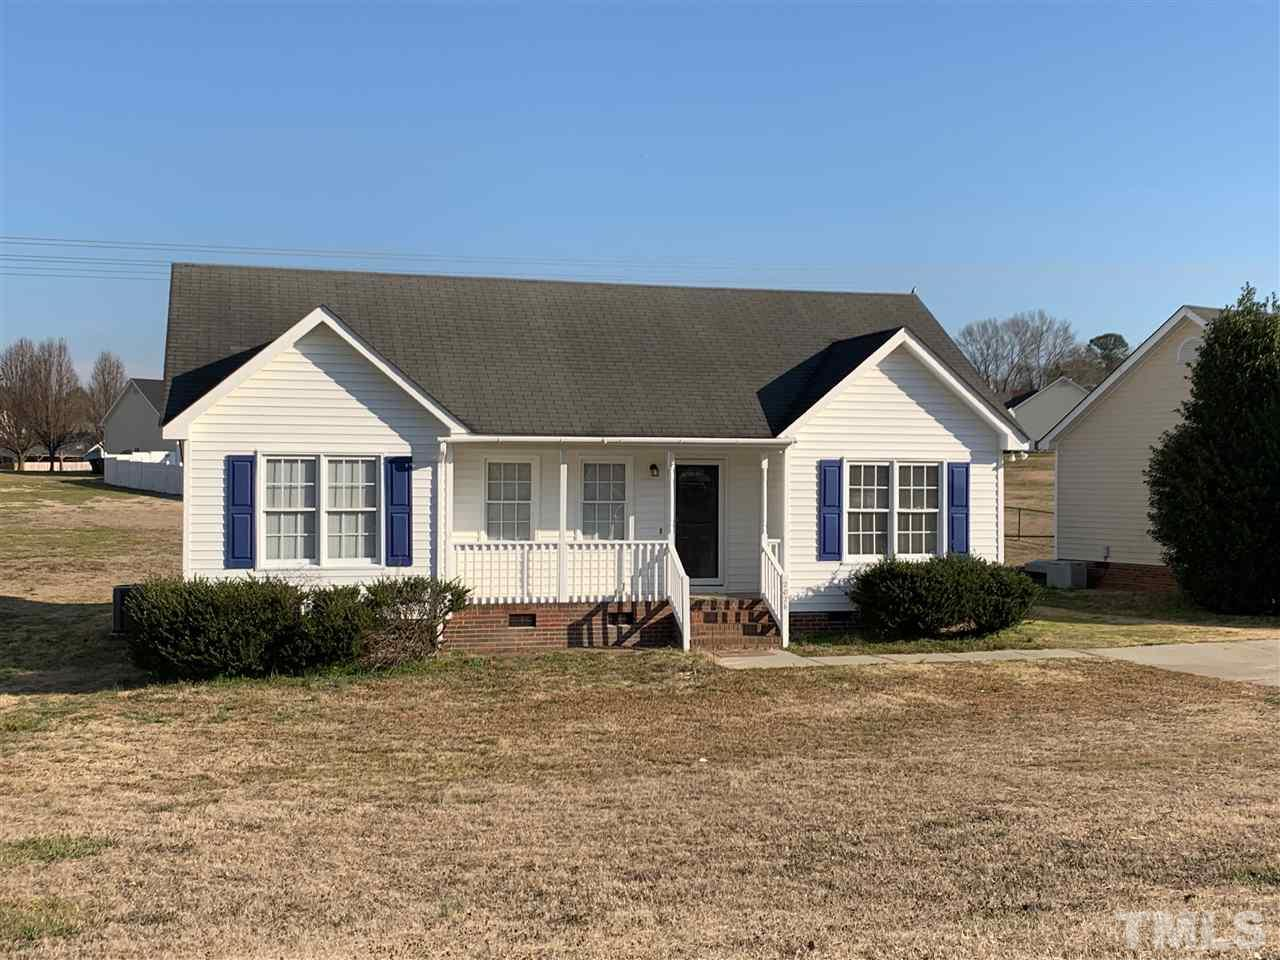 Lovely Ranch home with split floor plan, Cathedral ceiling in Living Room with new carpet fresh paint throughout. Dual vanity in master bathroom. Rocking chair front porch. Large backyard. Great location!